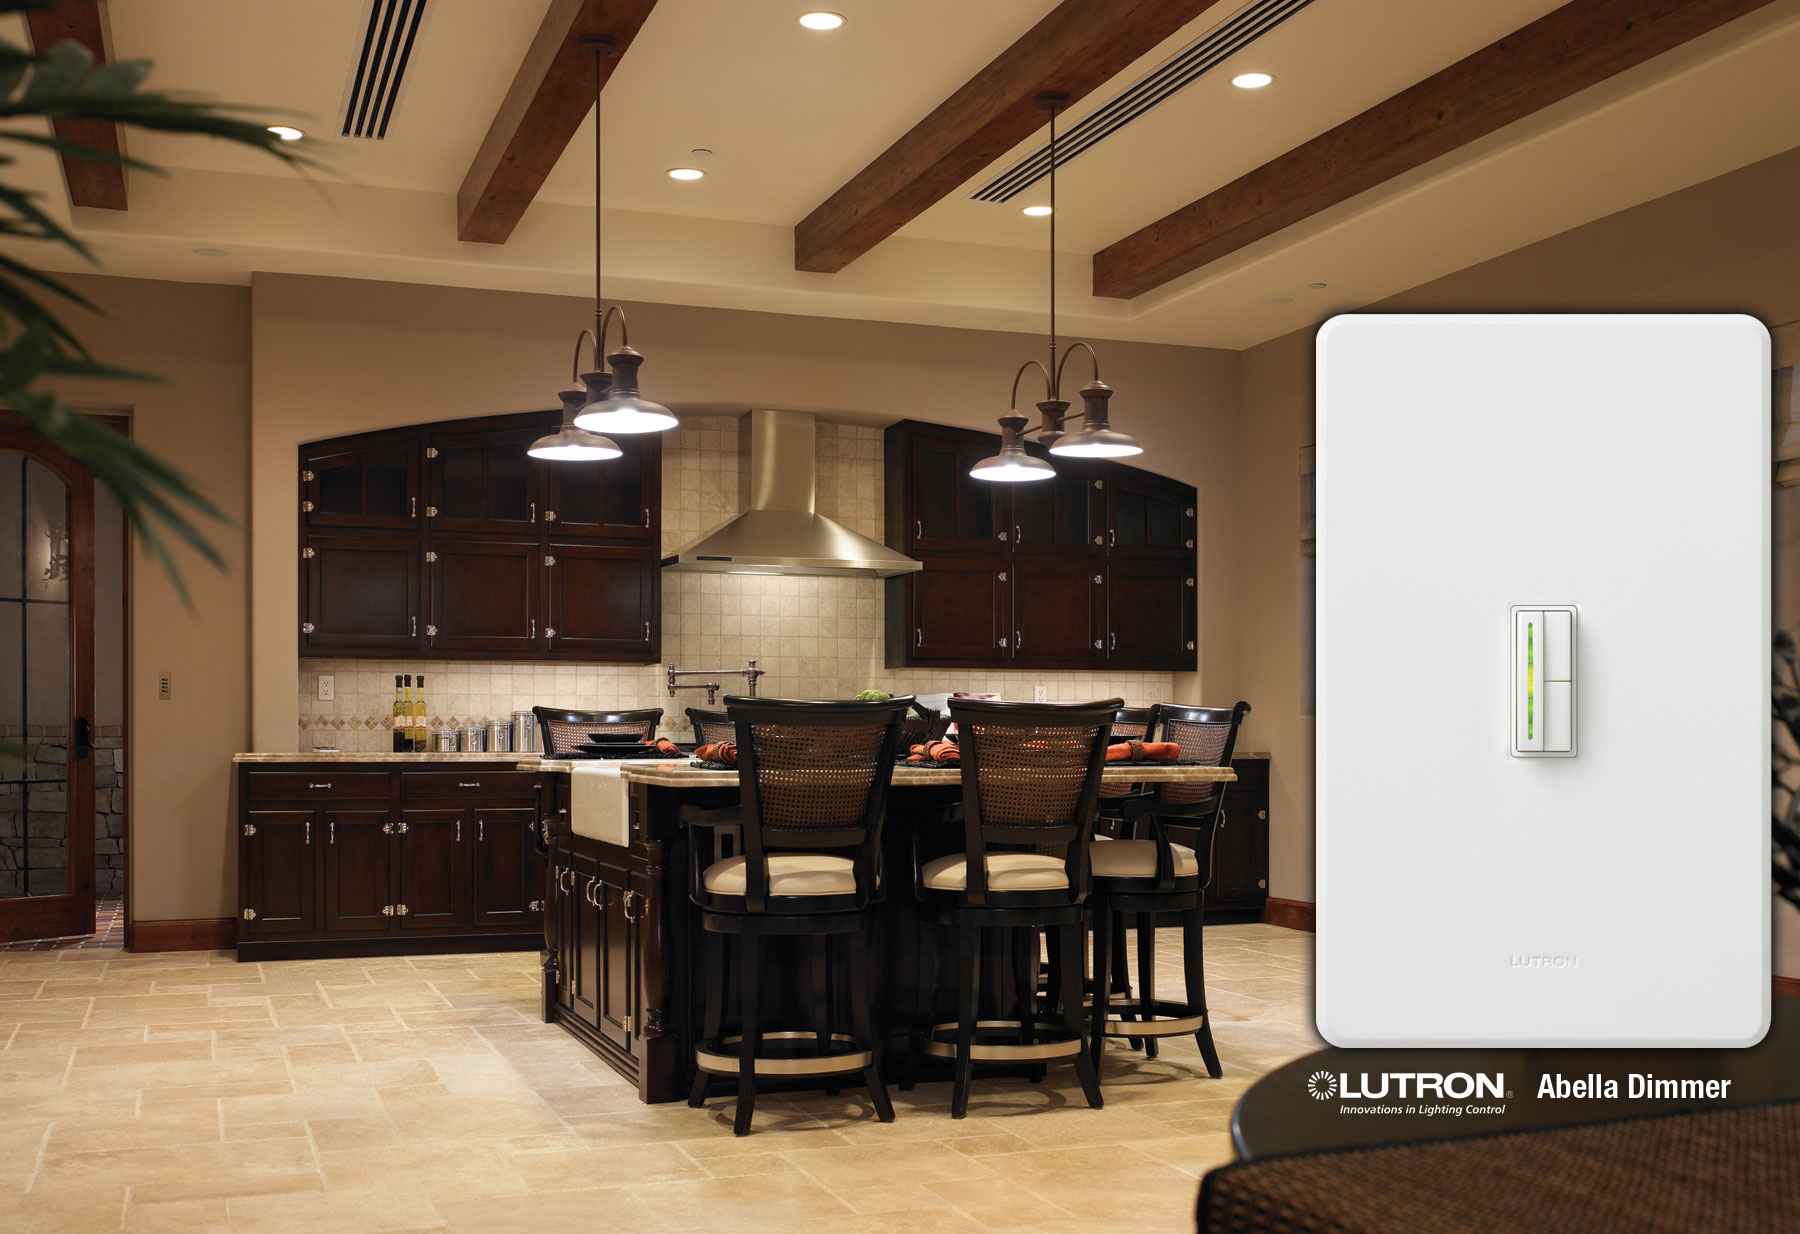 Lutron Lighting Controls Save Money Rensen House Of Lights